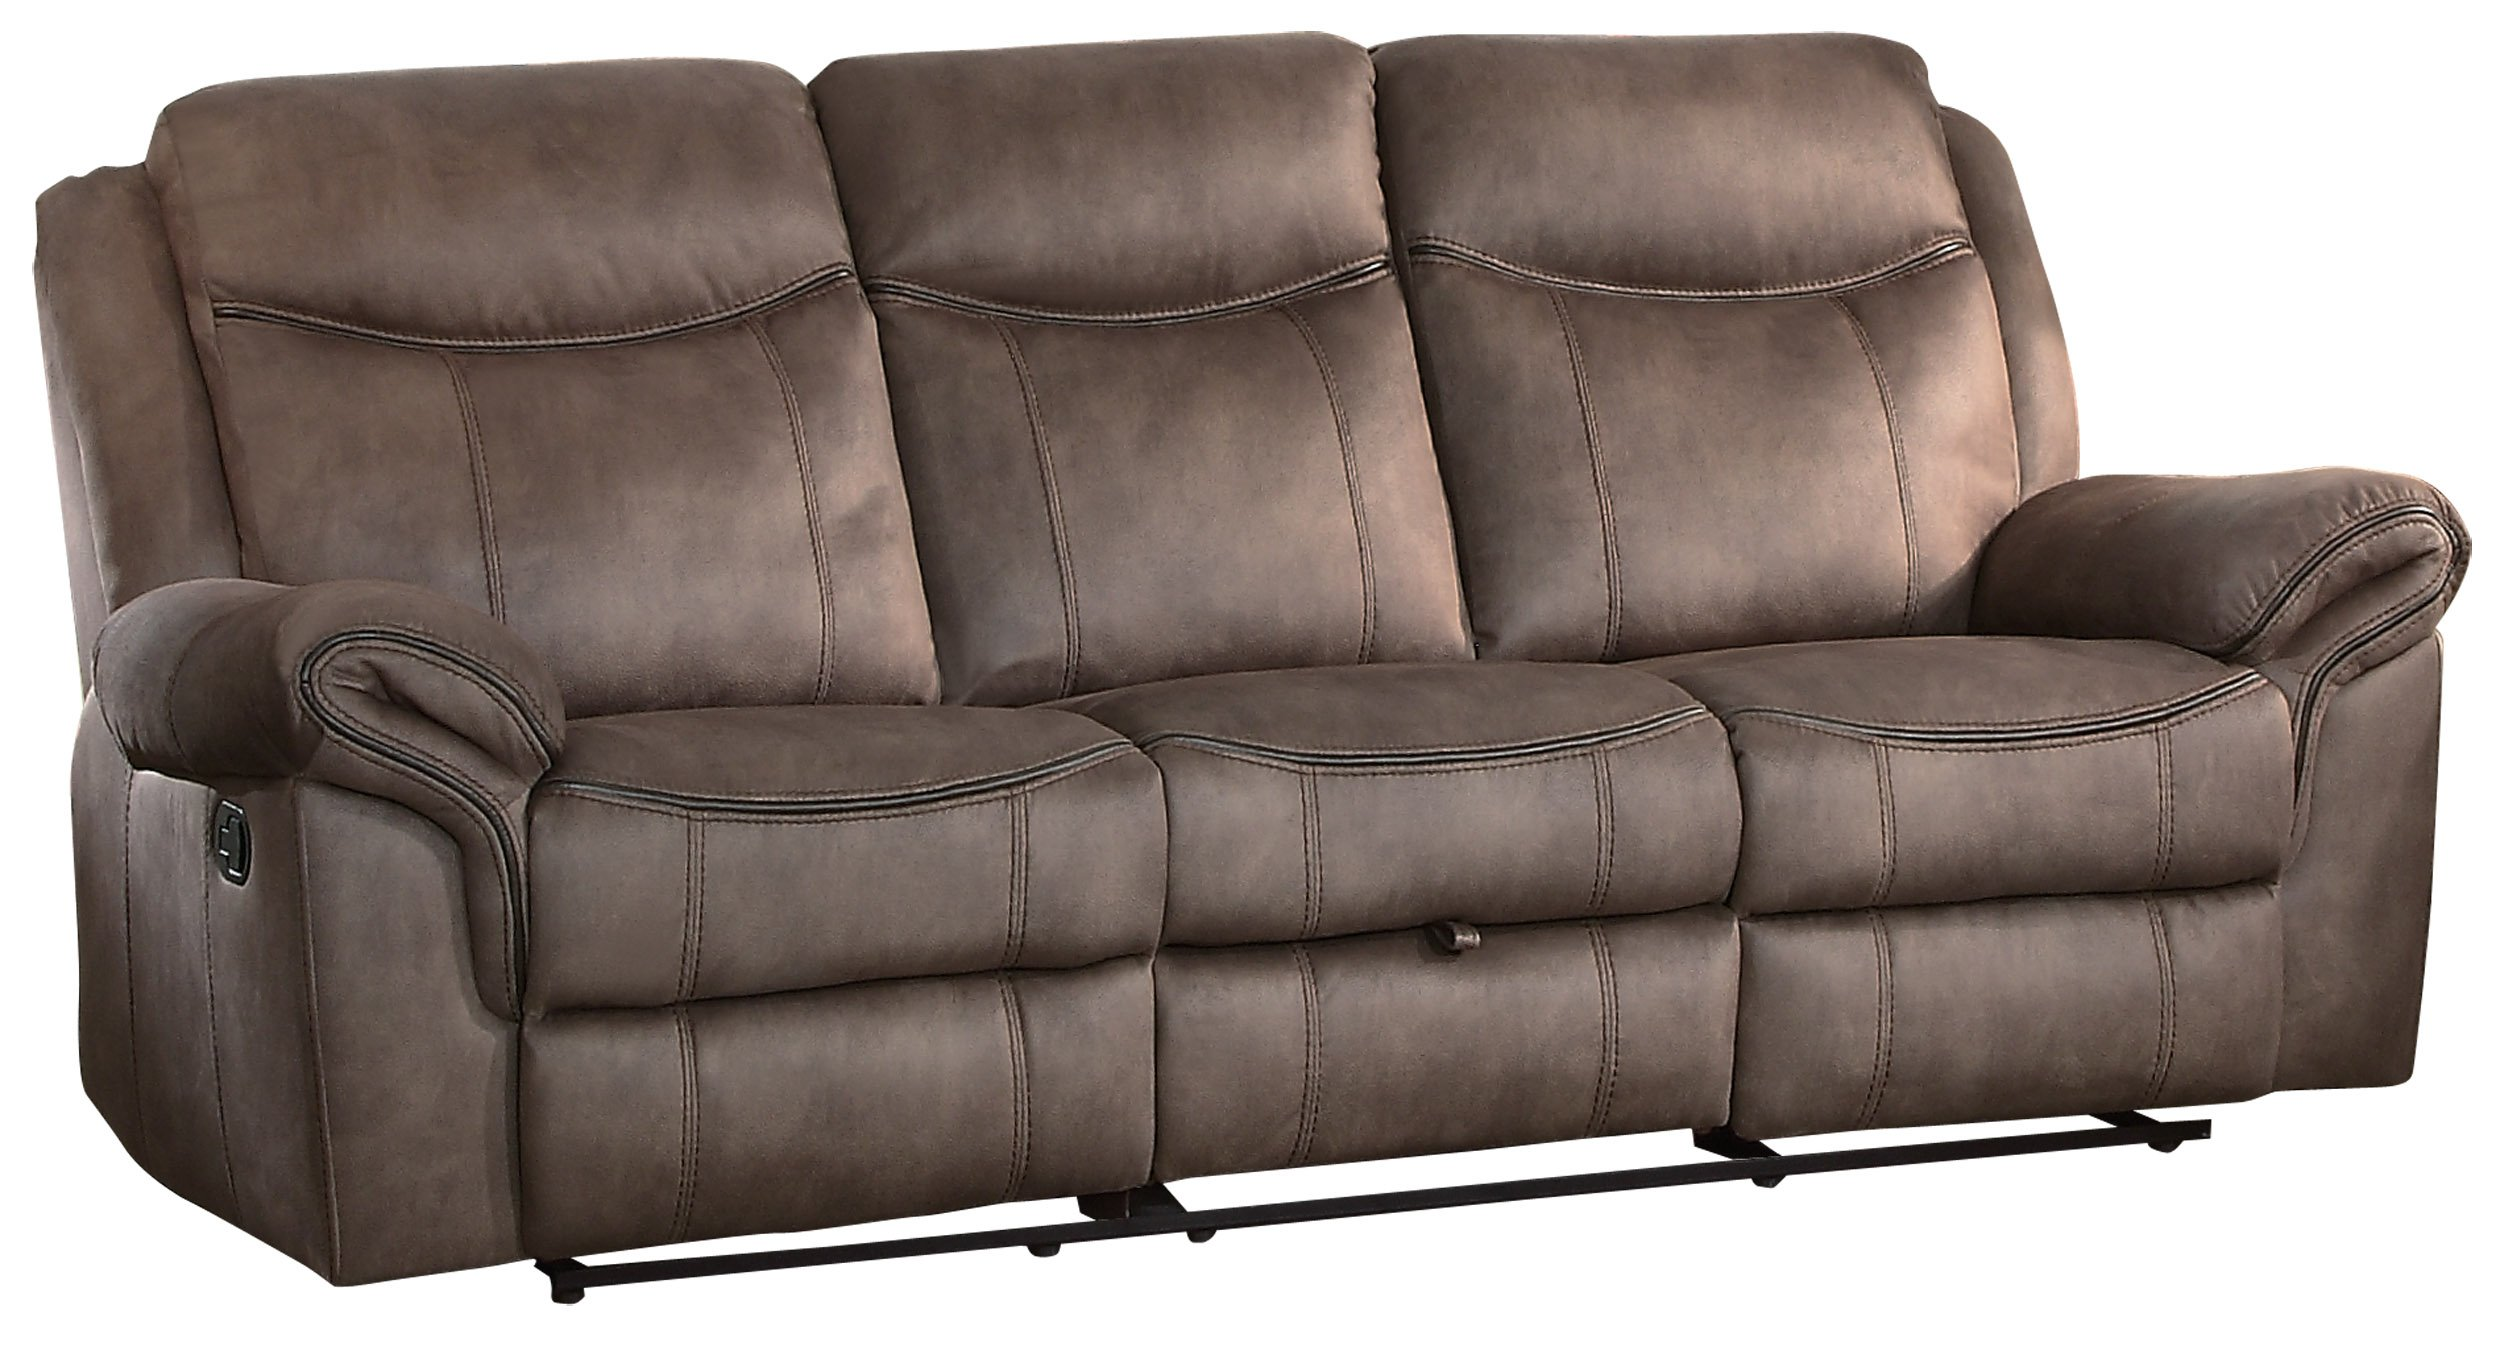 Homelegance Aram Double Recliner Sofa 100% Polyester Fabric Cover with Hidden Drawer, Brown